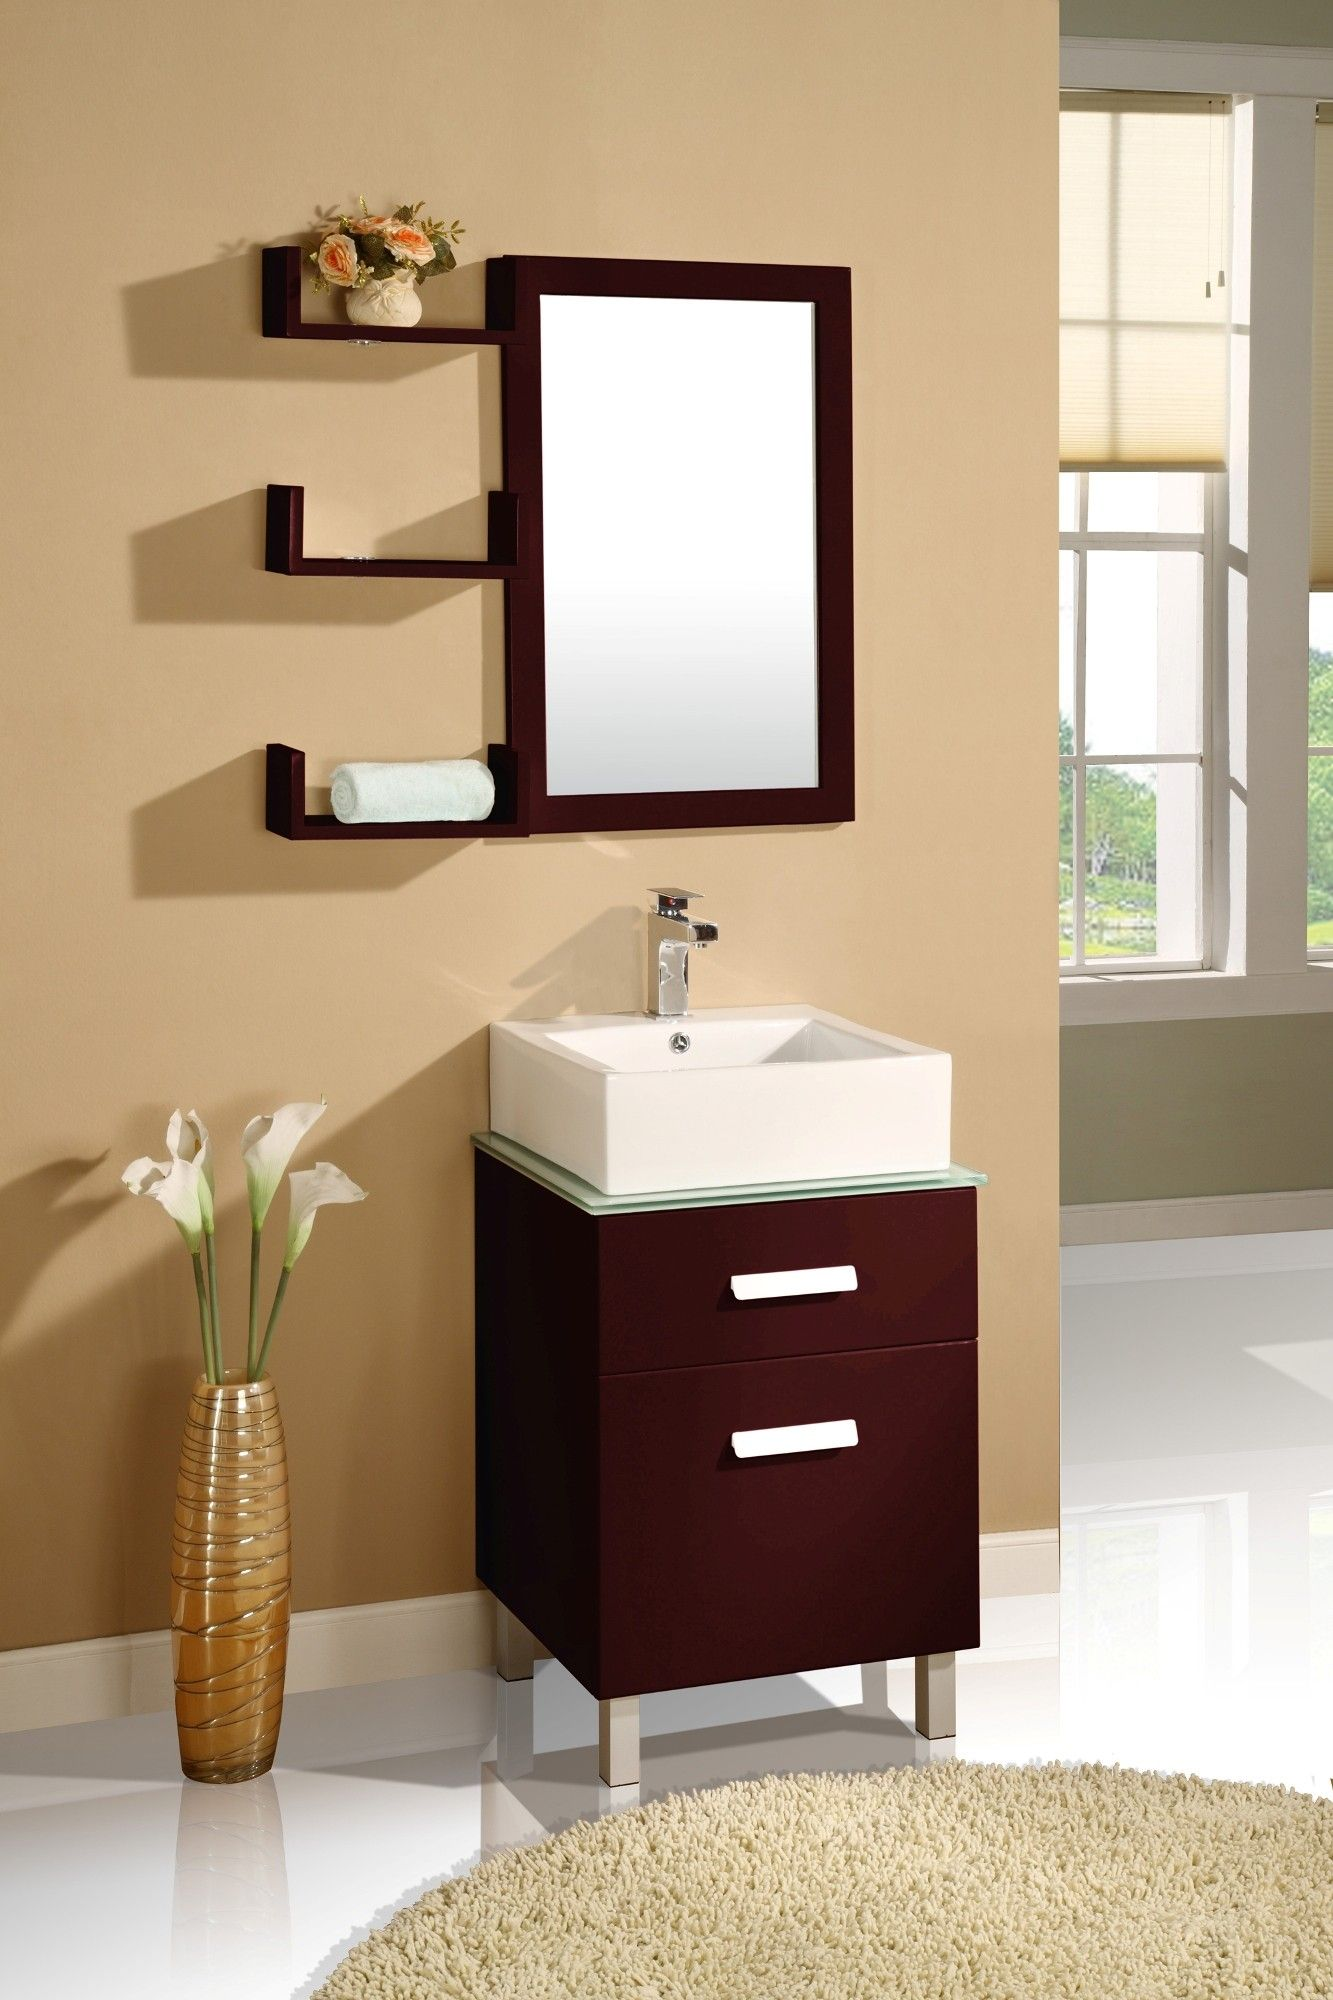 Aqua Decor Cabritzo 20 Inch Modern Bathroom Vanity Set W